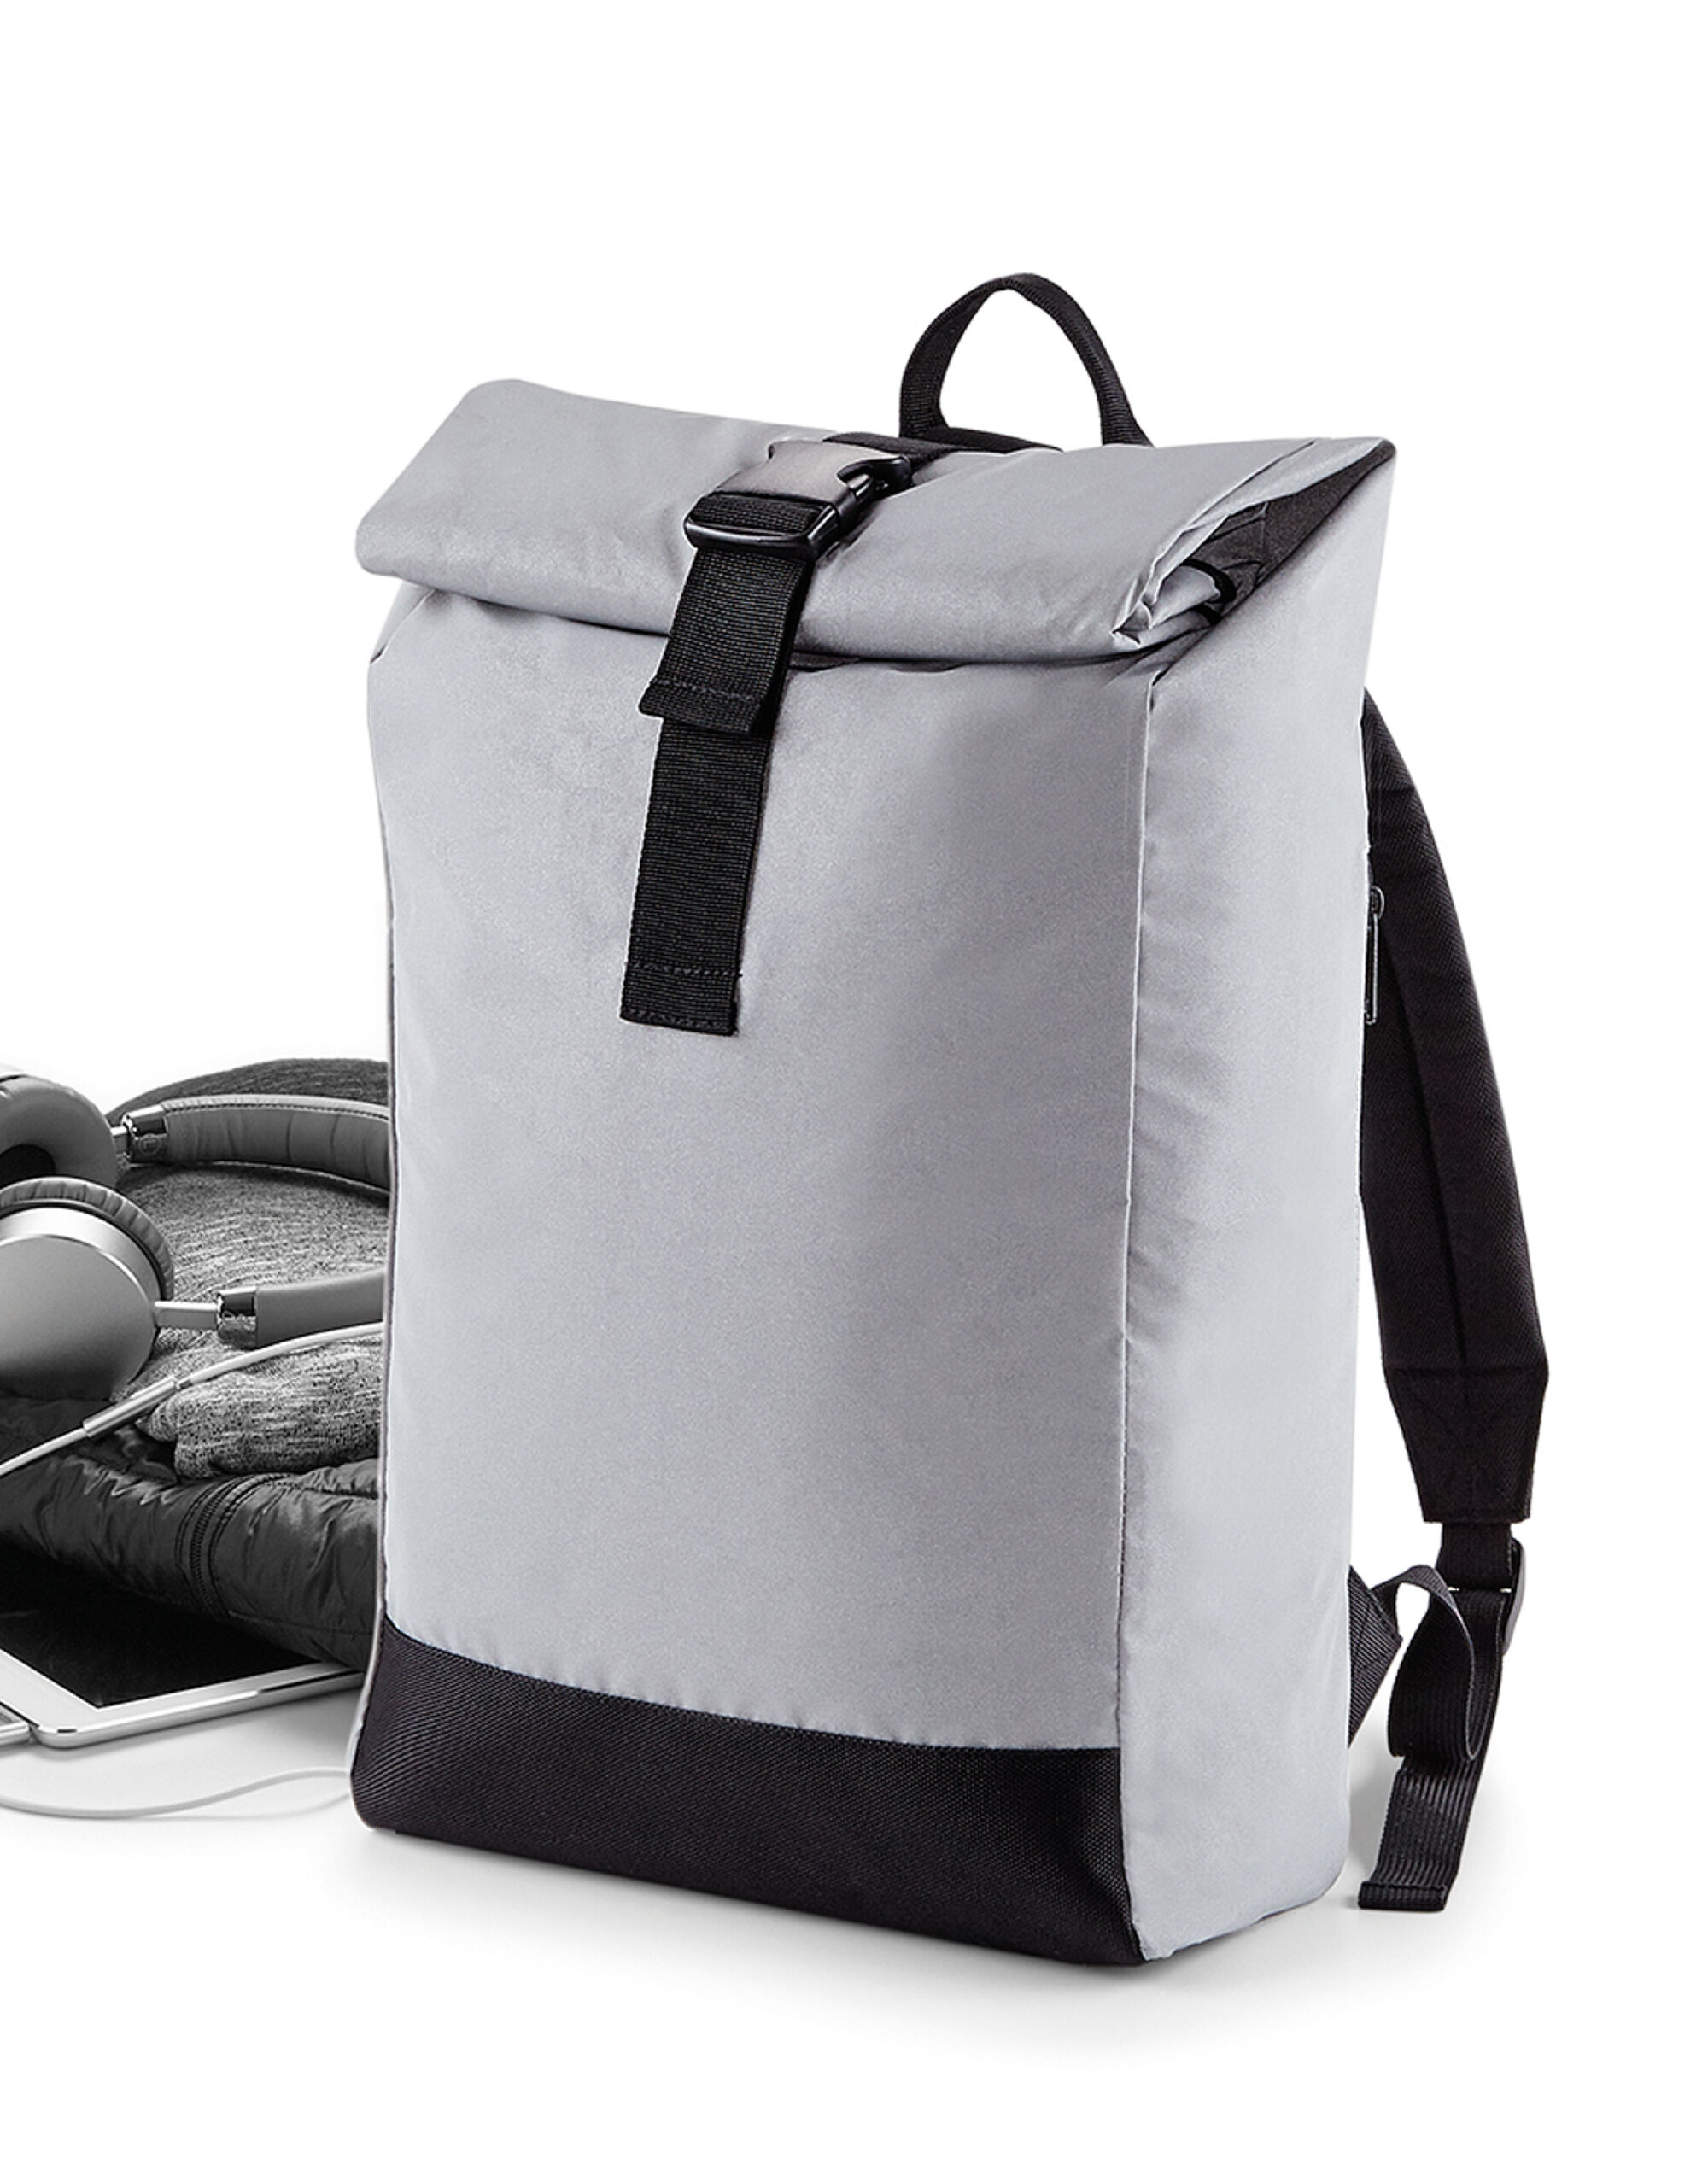 Reflective Roll Top Backpack